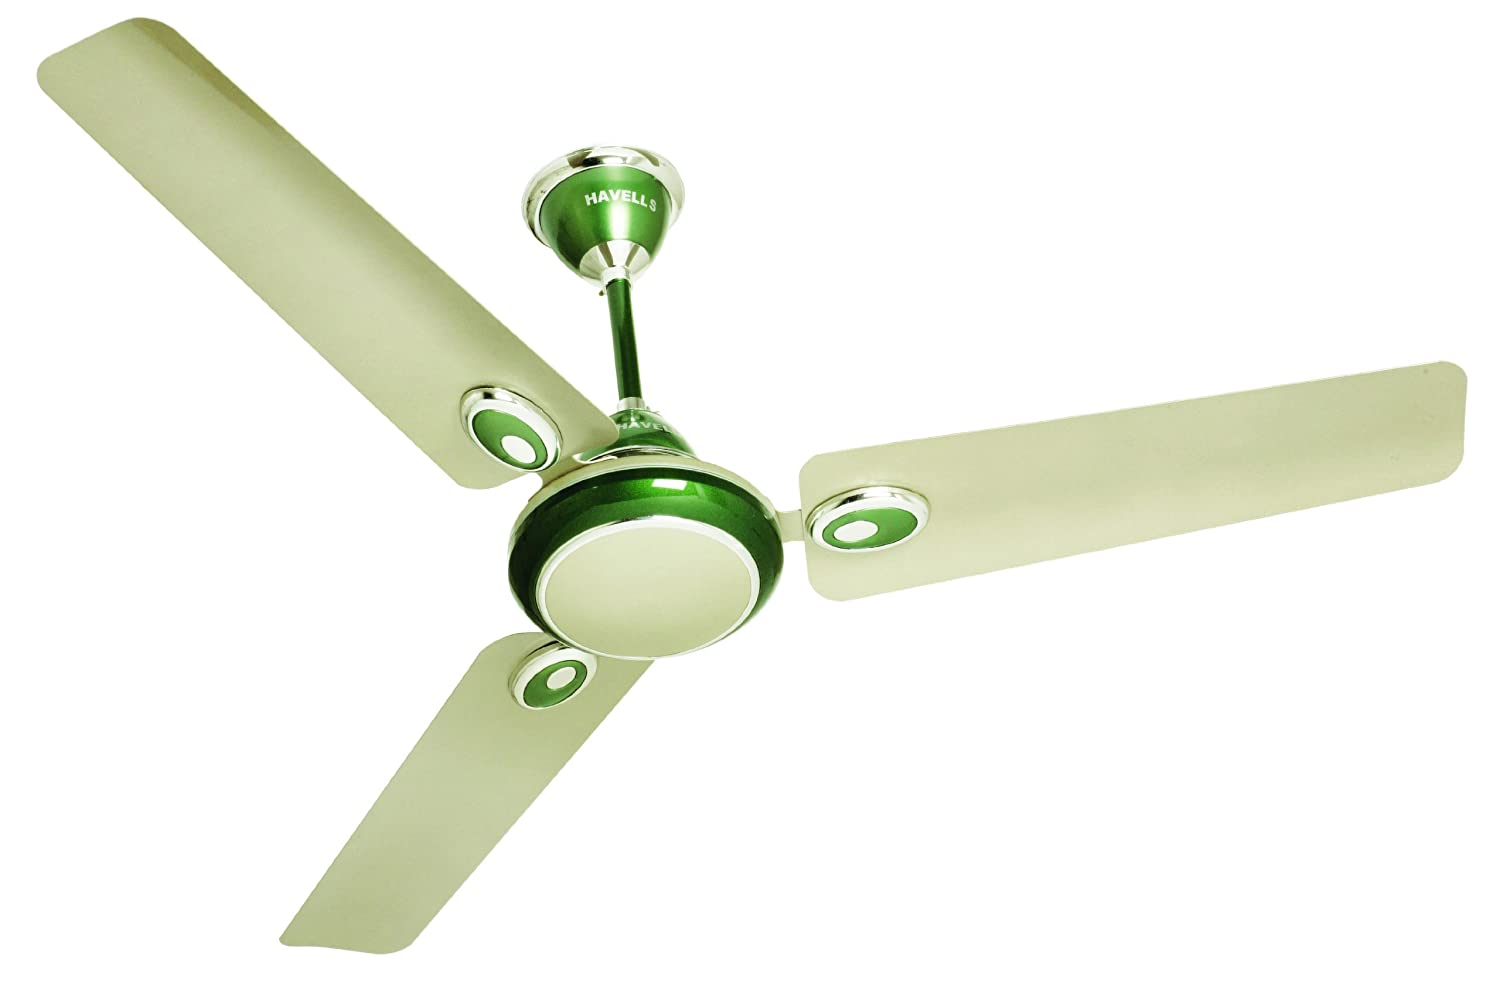 Buy havells fusion 1200mm ceiling fan oasis green online at low buy havells fusion 1200mm ceiling fan oasis green online at low prices in india amazon aloadofball Gallery